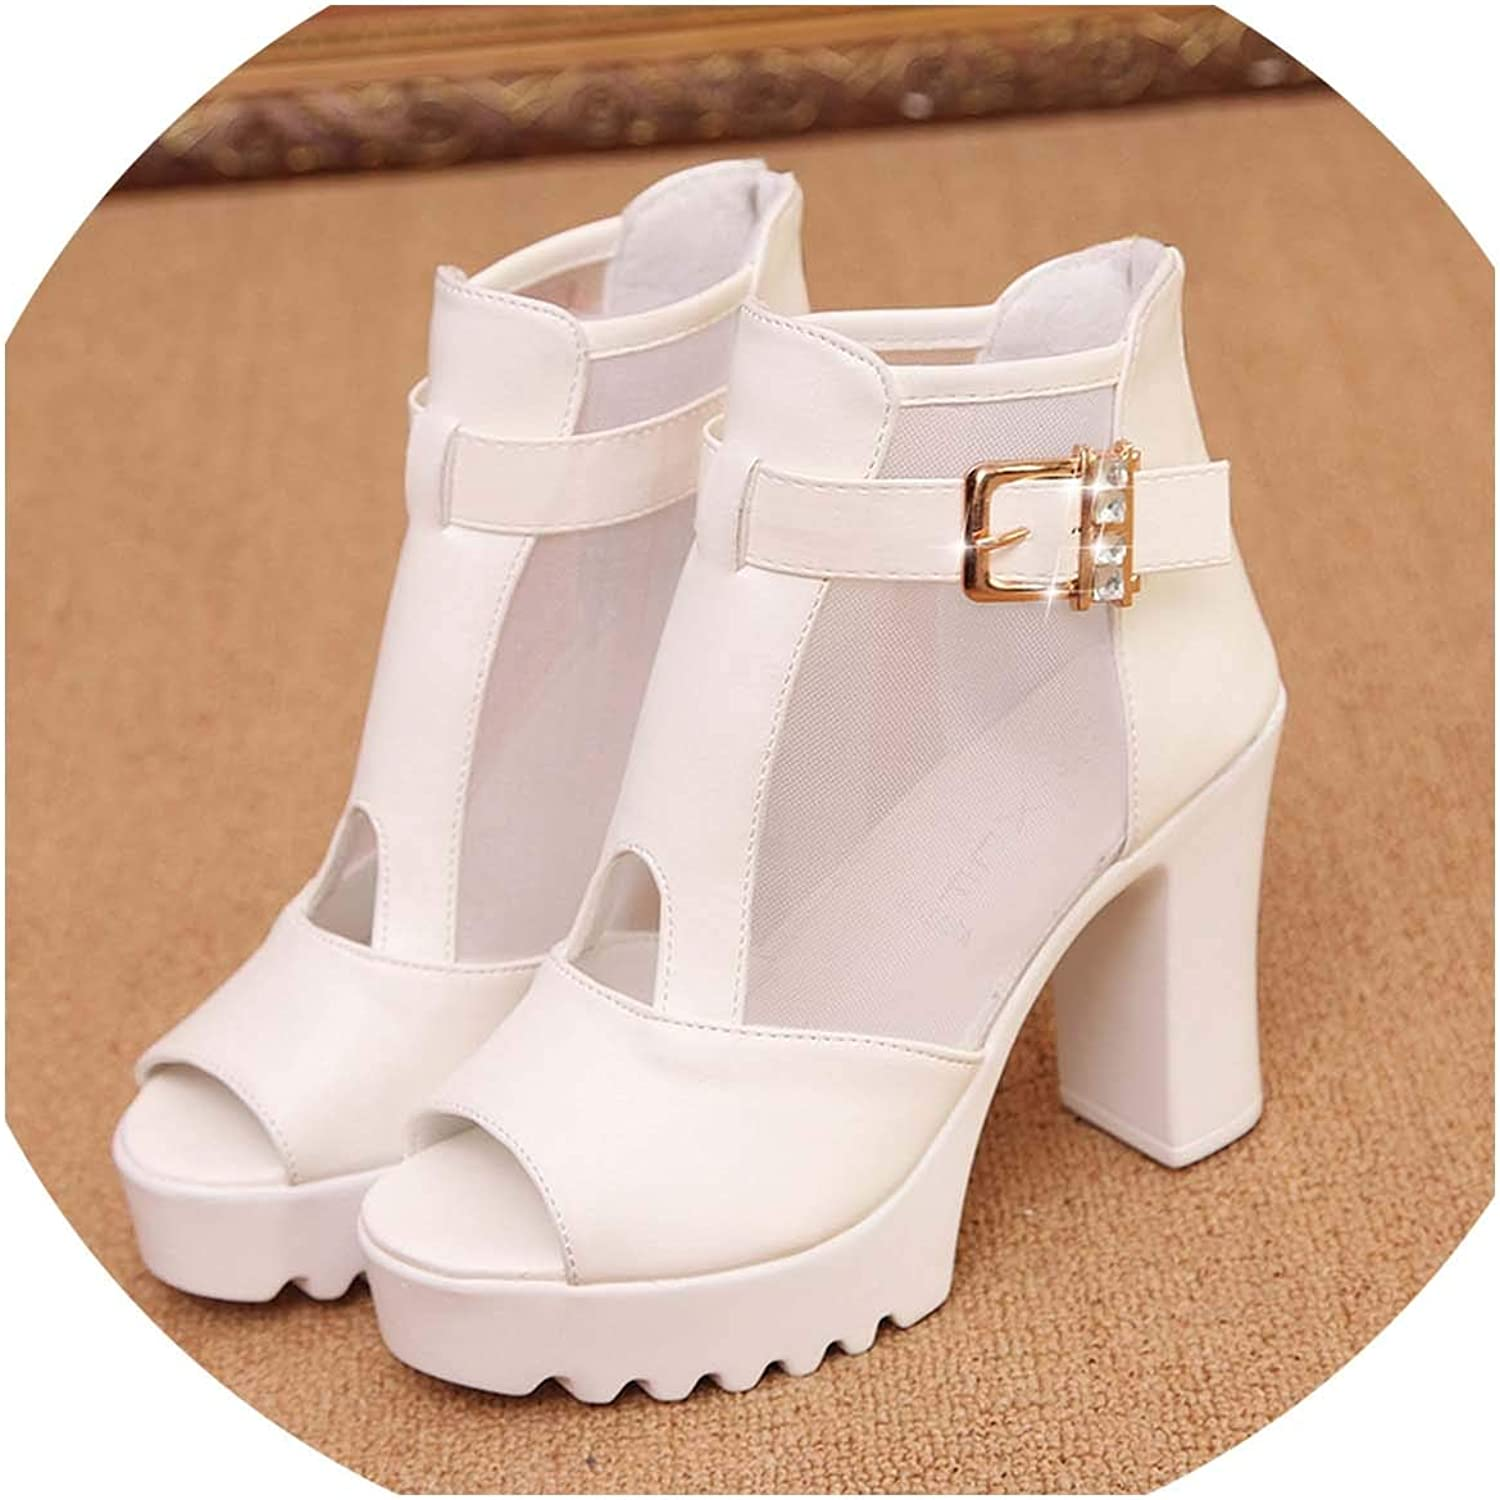 HuangKang Middle Heel Sandals Female Summer New Cross Straps Roman shoes One Buckle Student Thick with Sandals